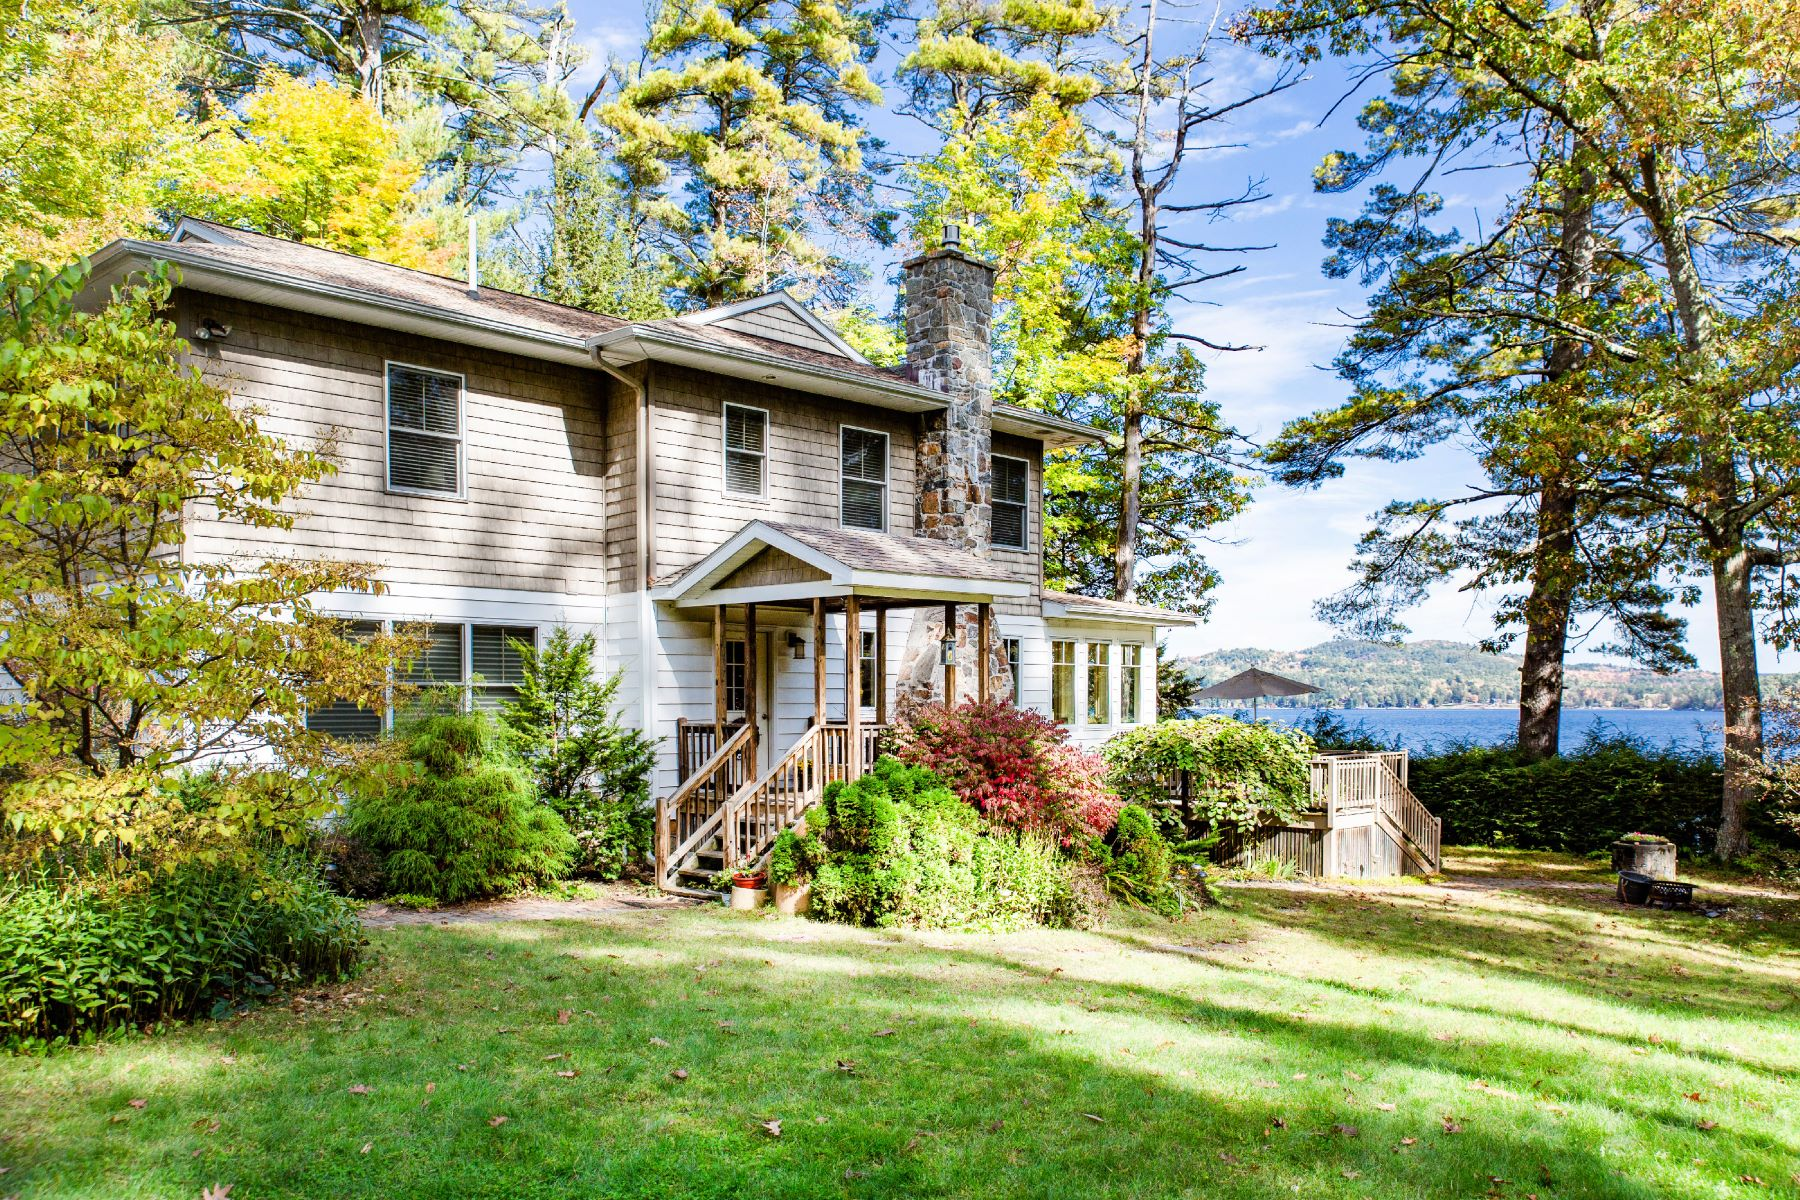 Single Family Homes for Sale at Custom Schroon Lake Home 8514 State Route 9 Schroon Lake, New York 12870 United States